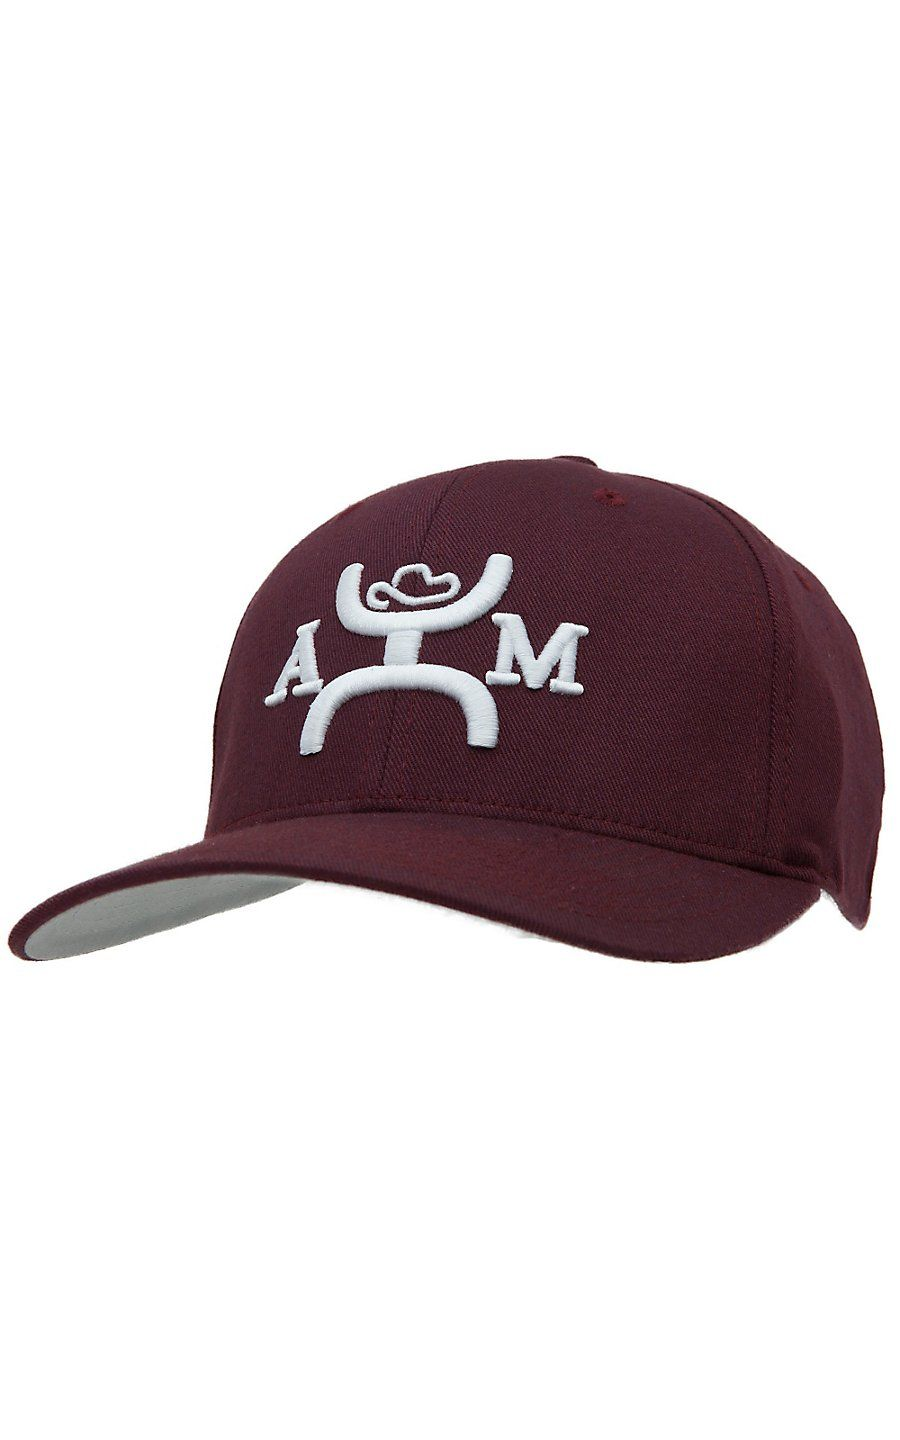 184d2caf2a8d5 ... netherlands hooey maroon with white logo cap h2012tamu 80d0a f2a61